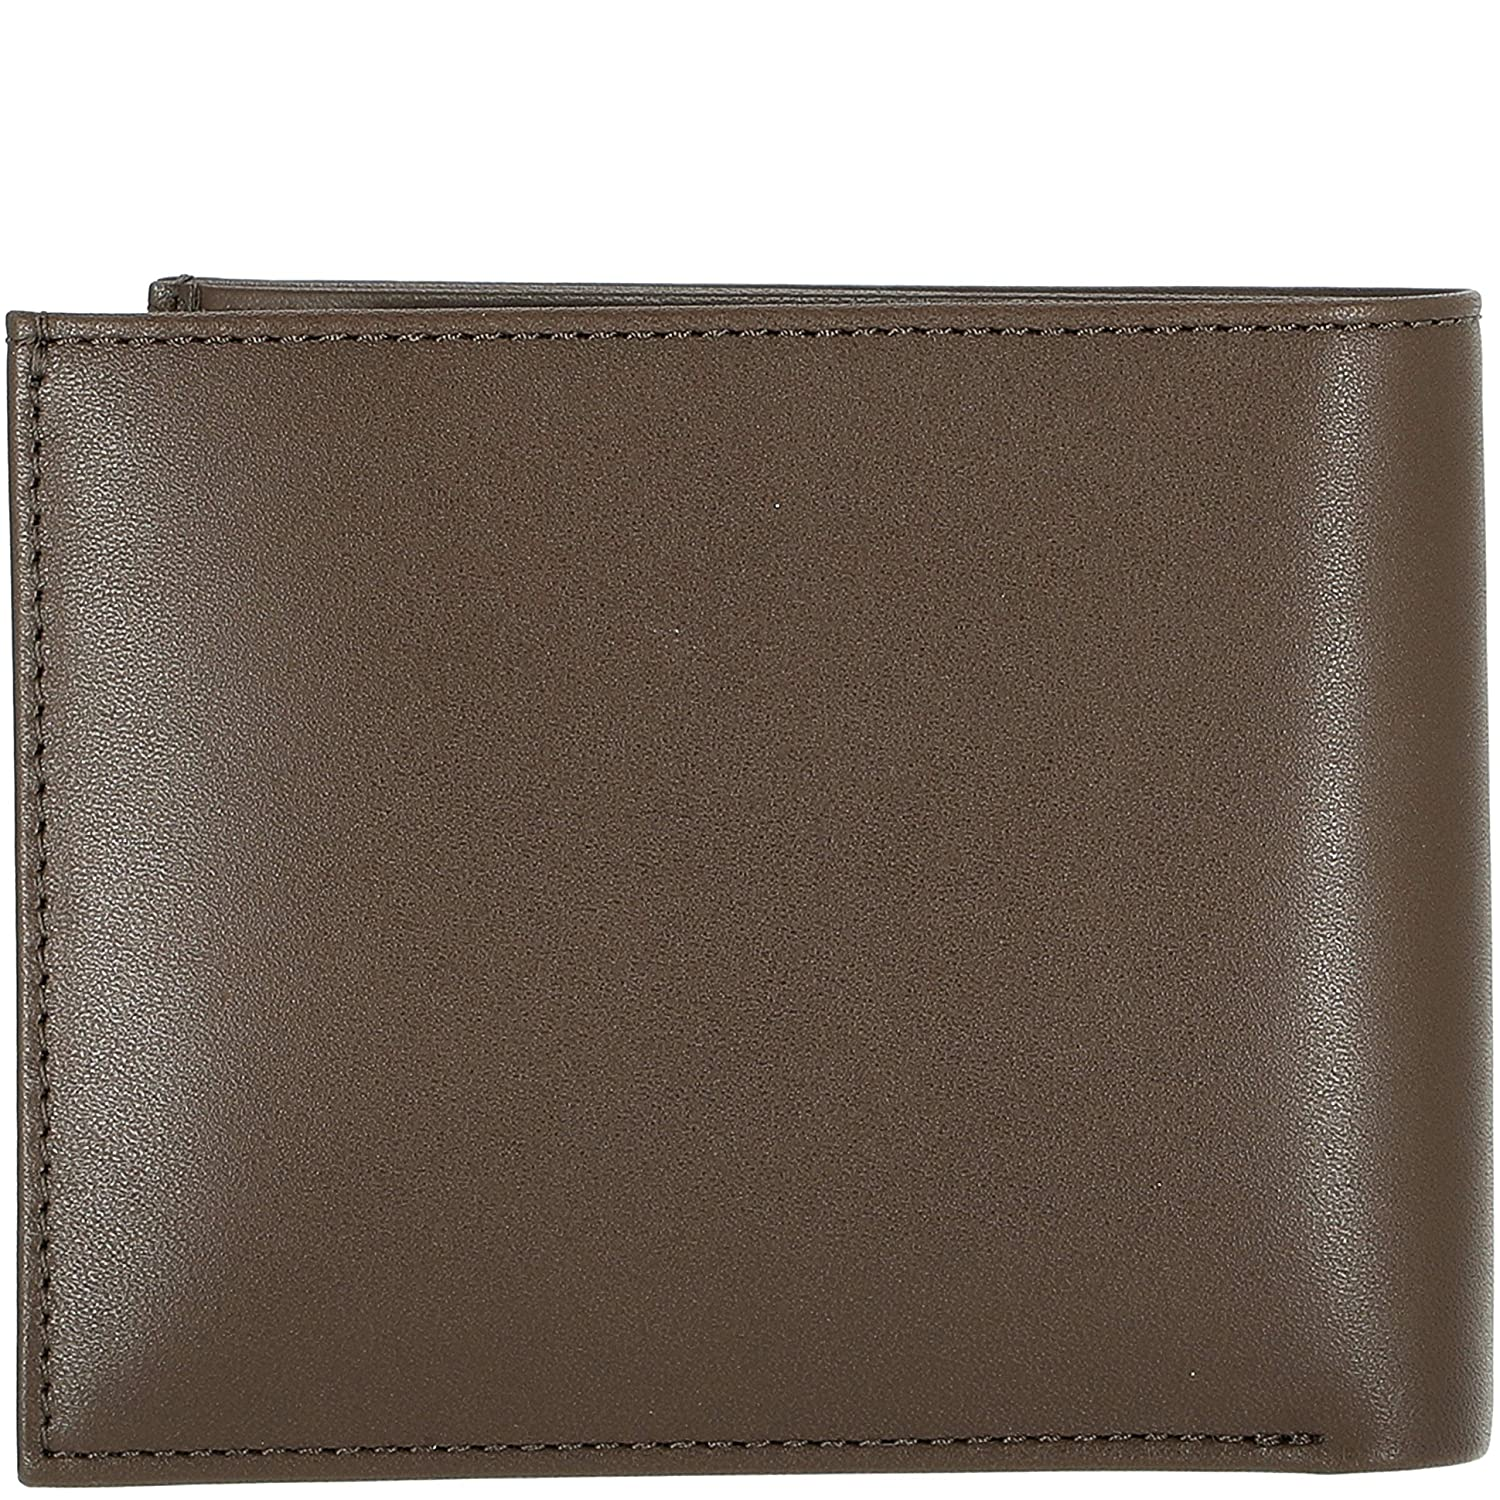 Victorinox Altius Edge Fermat Bi-fold Wallet with Passcase and RFID